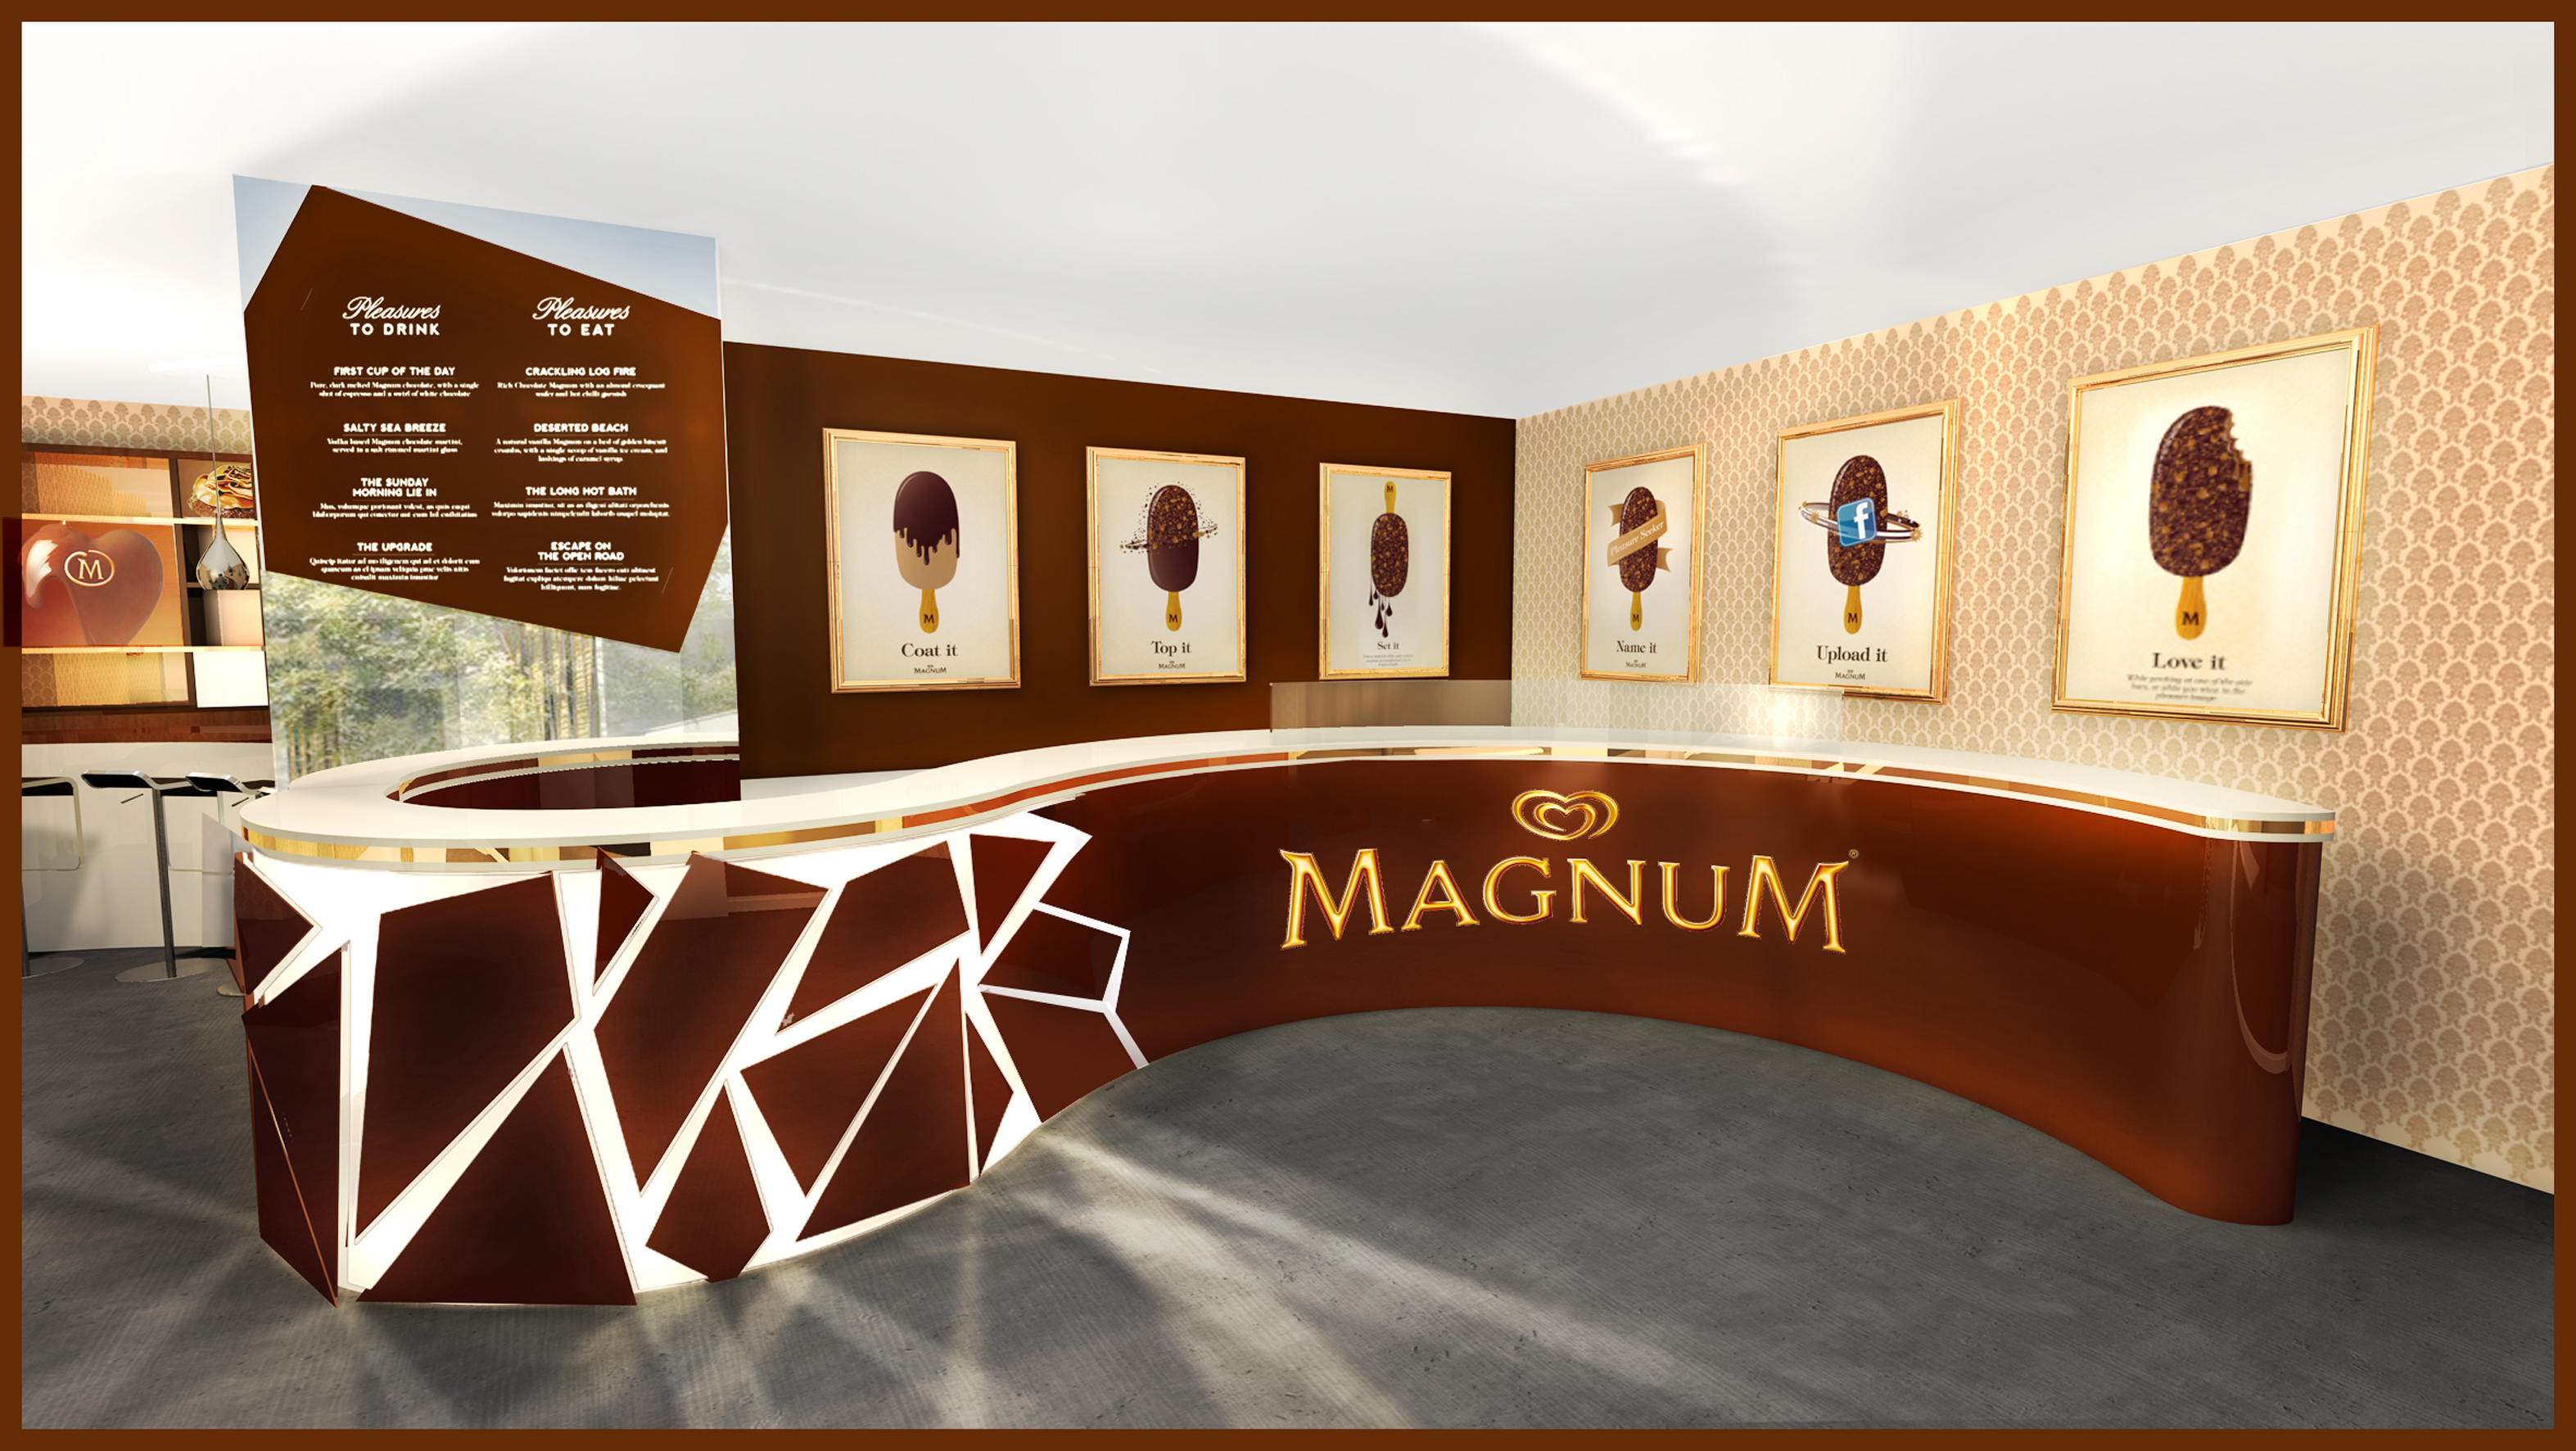 magnum ouvre son caf ph m re paris frais ls et produits surgel s. Black Bedroom Furniture Sets. Home Design Ideas